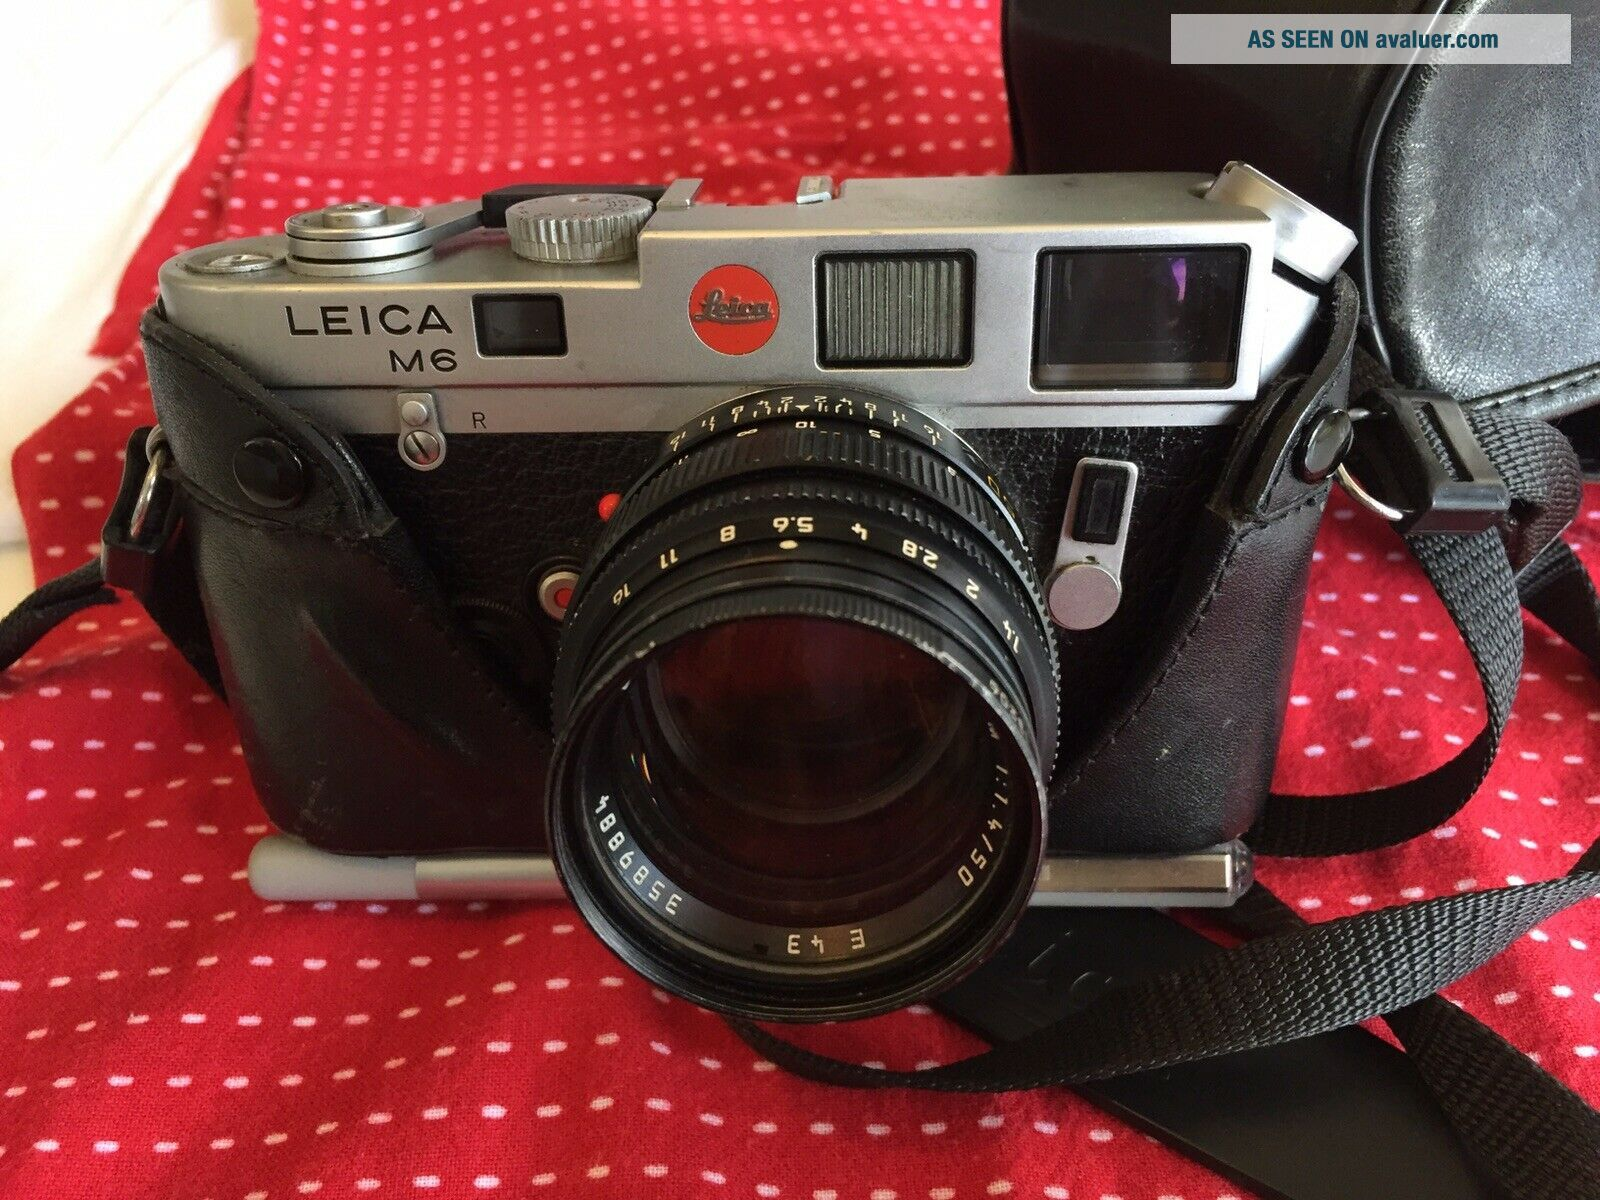 Leica M6 Rangefinder With Lens And Case